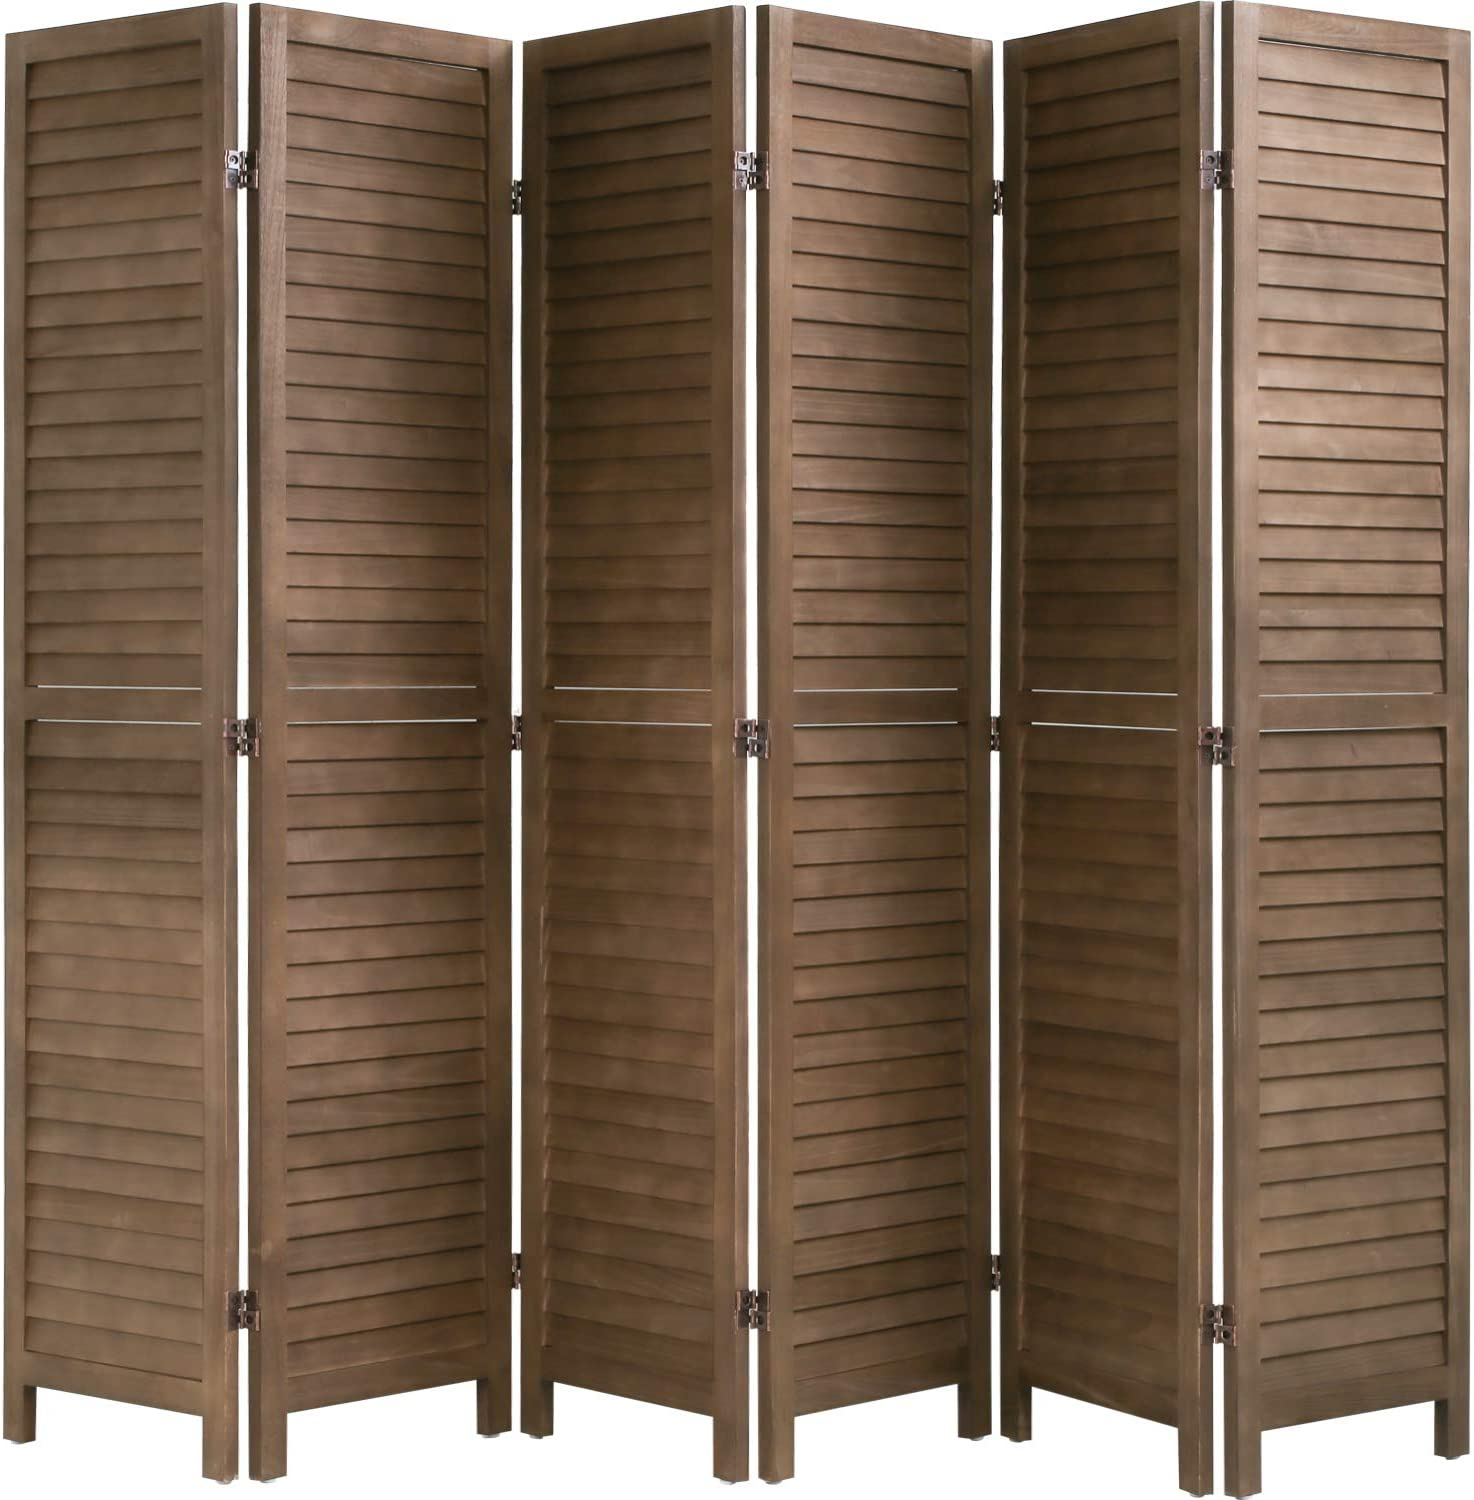 6 Panel Wood Room Divider 5.75 Ft Tall Privacy Wall Divider Folding Wood Screen 68.9